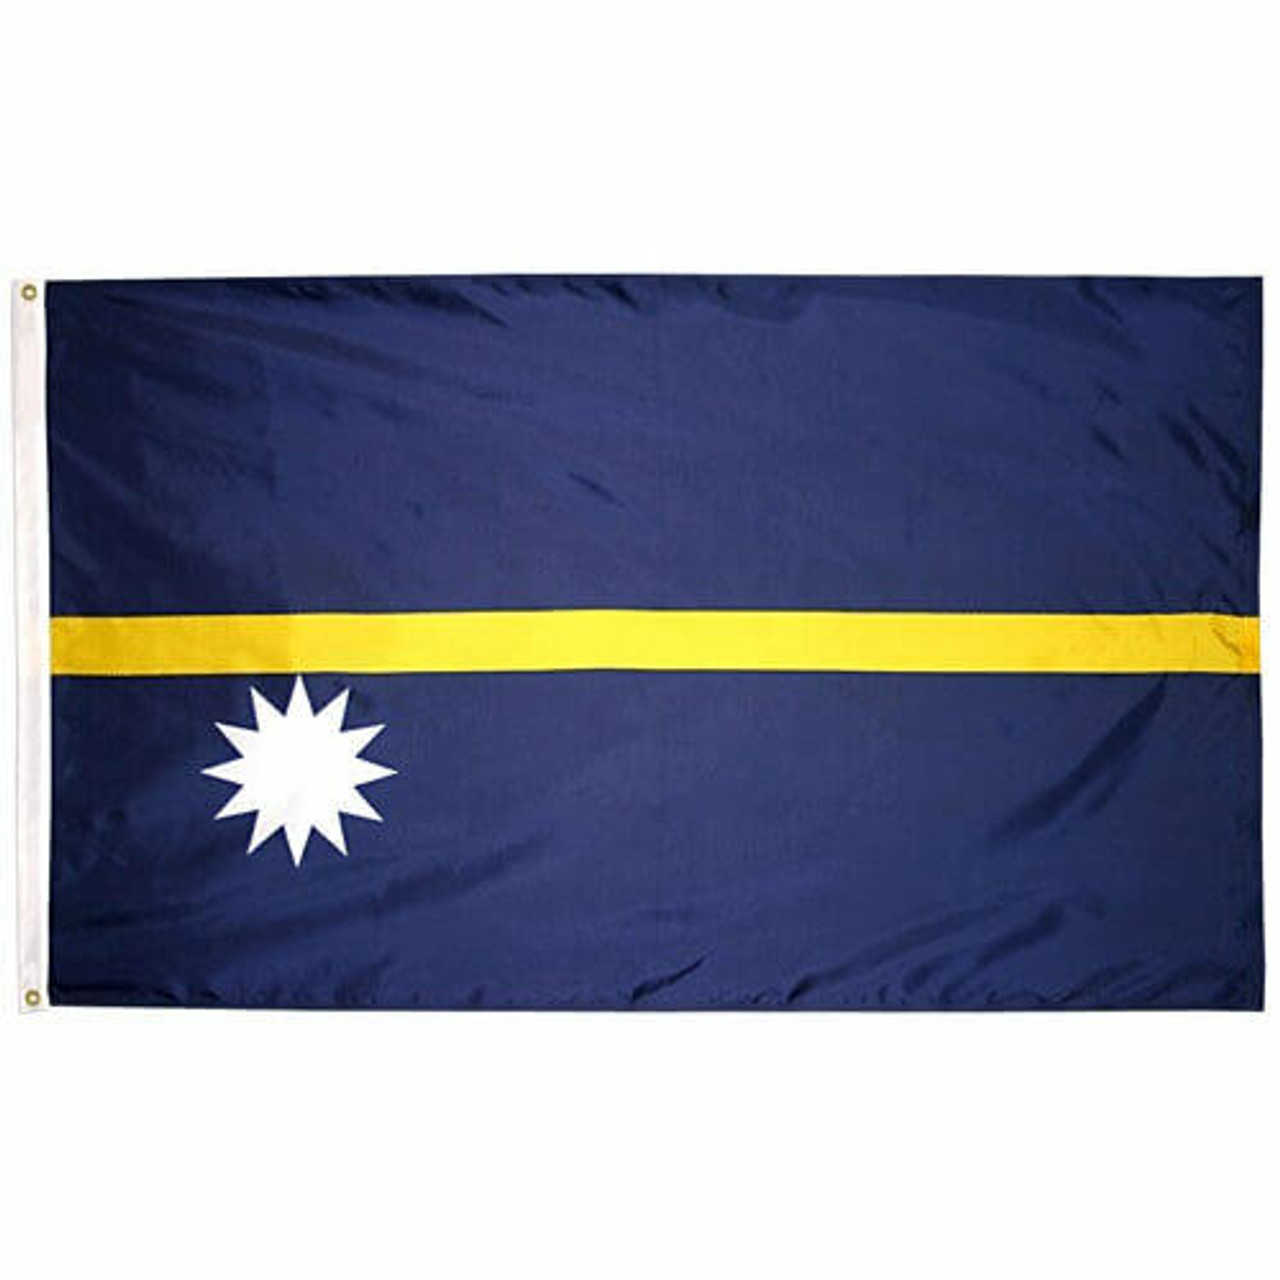 The Nauru flag consists of a blue field with a single horizontal yellow stripe and a 12 pointed white star in the lower hoist corner.